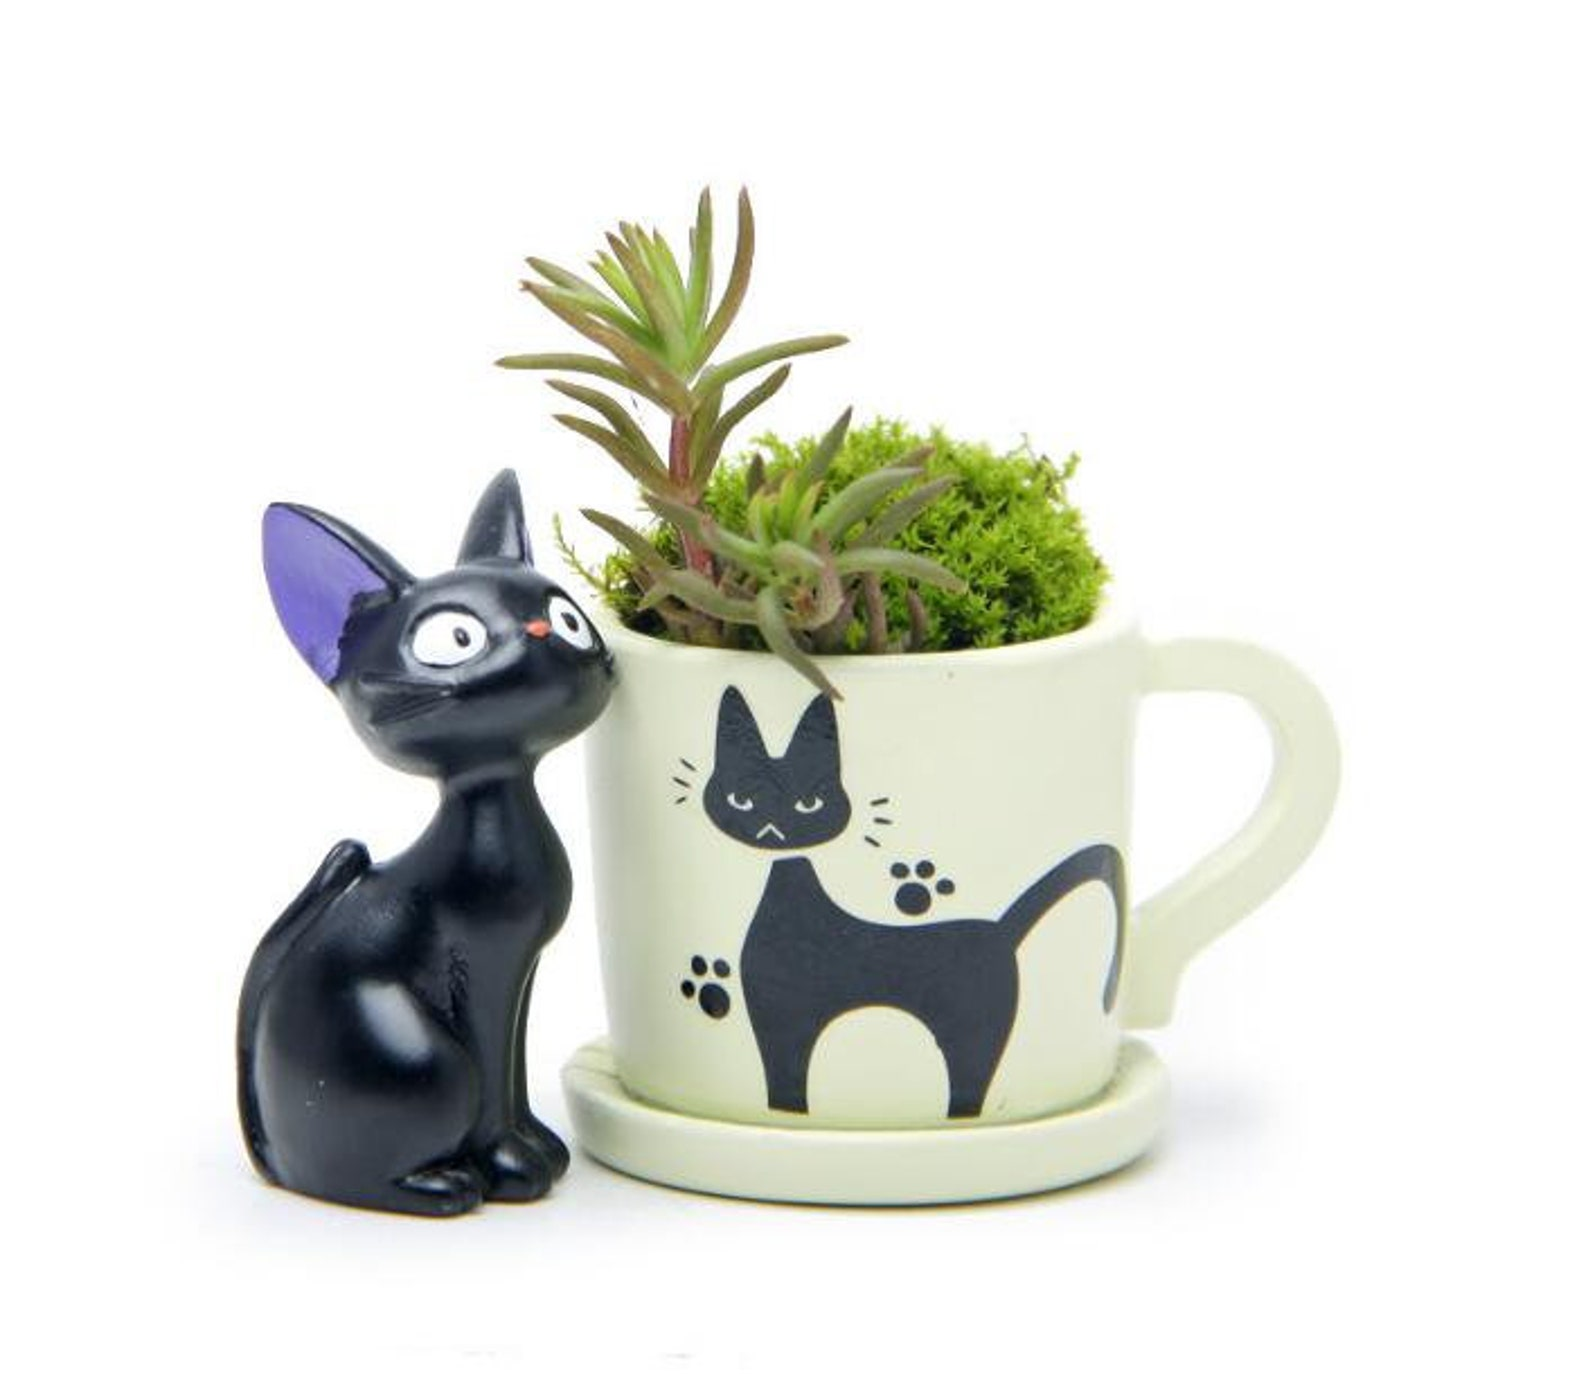 Kiki's Delivery Service Desk Display Flowerpot Black Cat Succulent Container